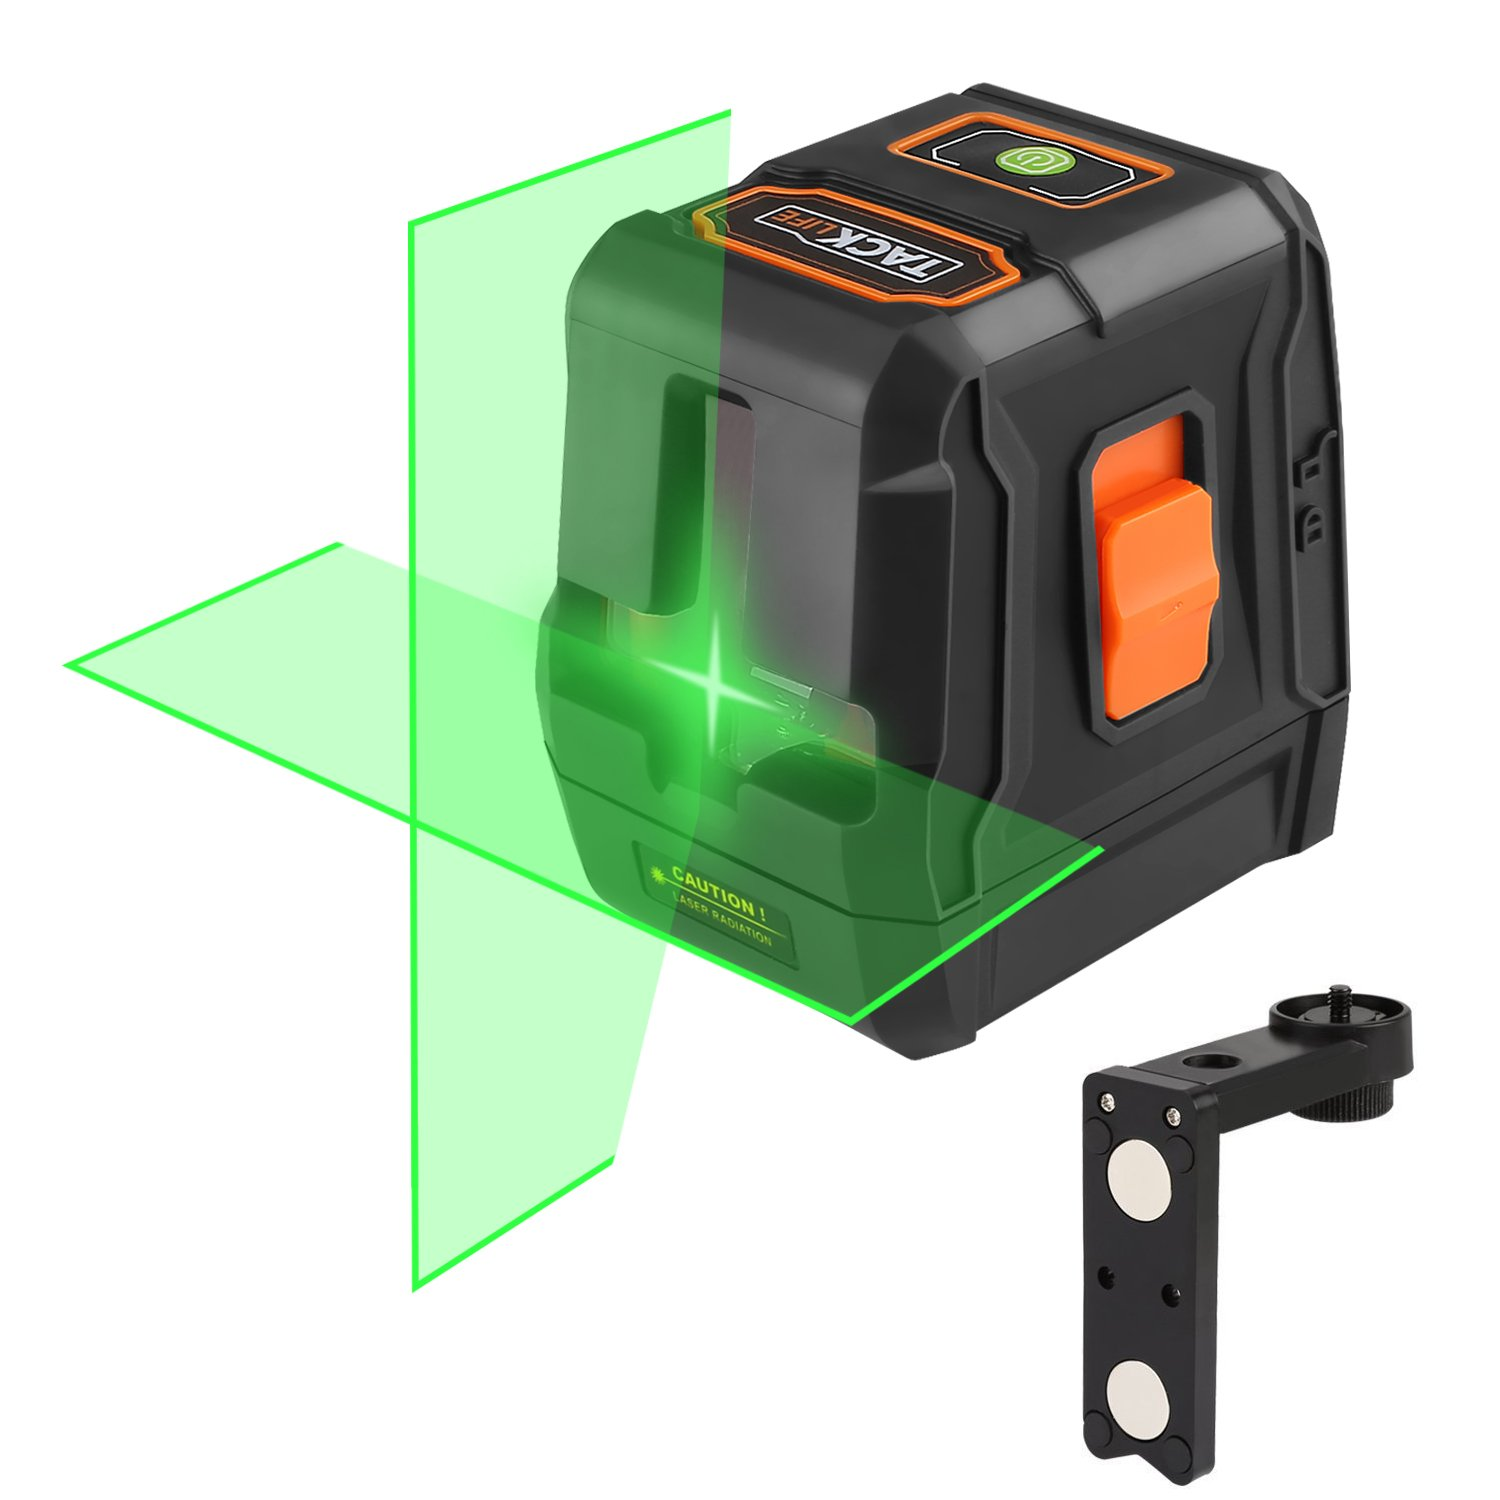 Carrying Pouch Laser Level SC-L07G Green Laser Level 98 Ft Self-Leveling Cross-Line laser Horizontal and Vertical Lines Higher Visibility with Full Soft Rubber Covered Flexible Magnetic Mount Base